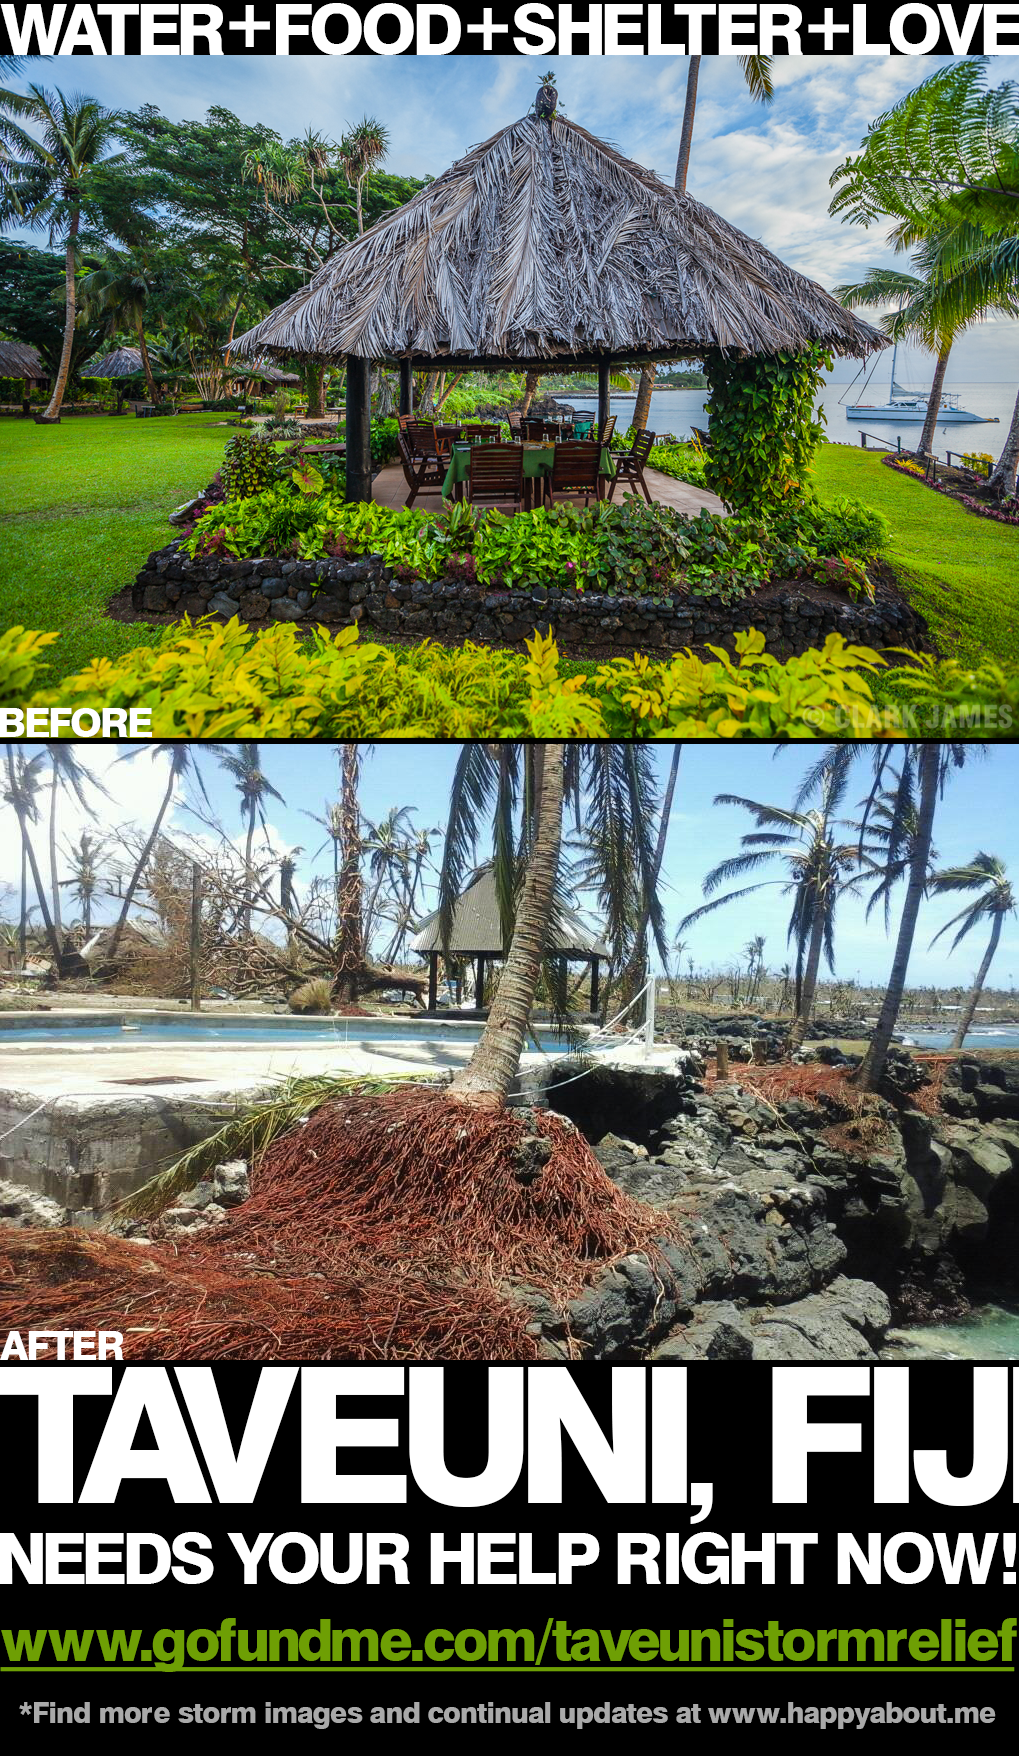 Paradise-Before-After-02